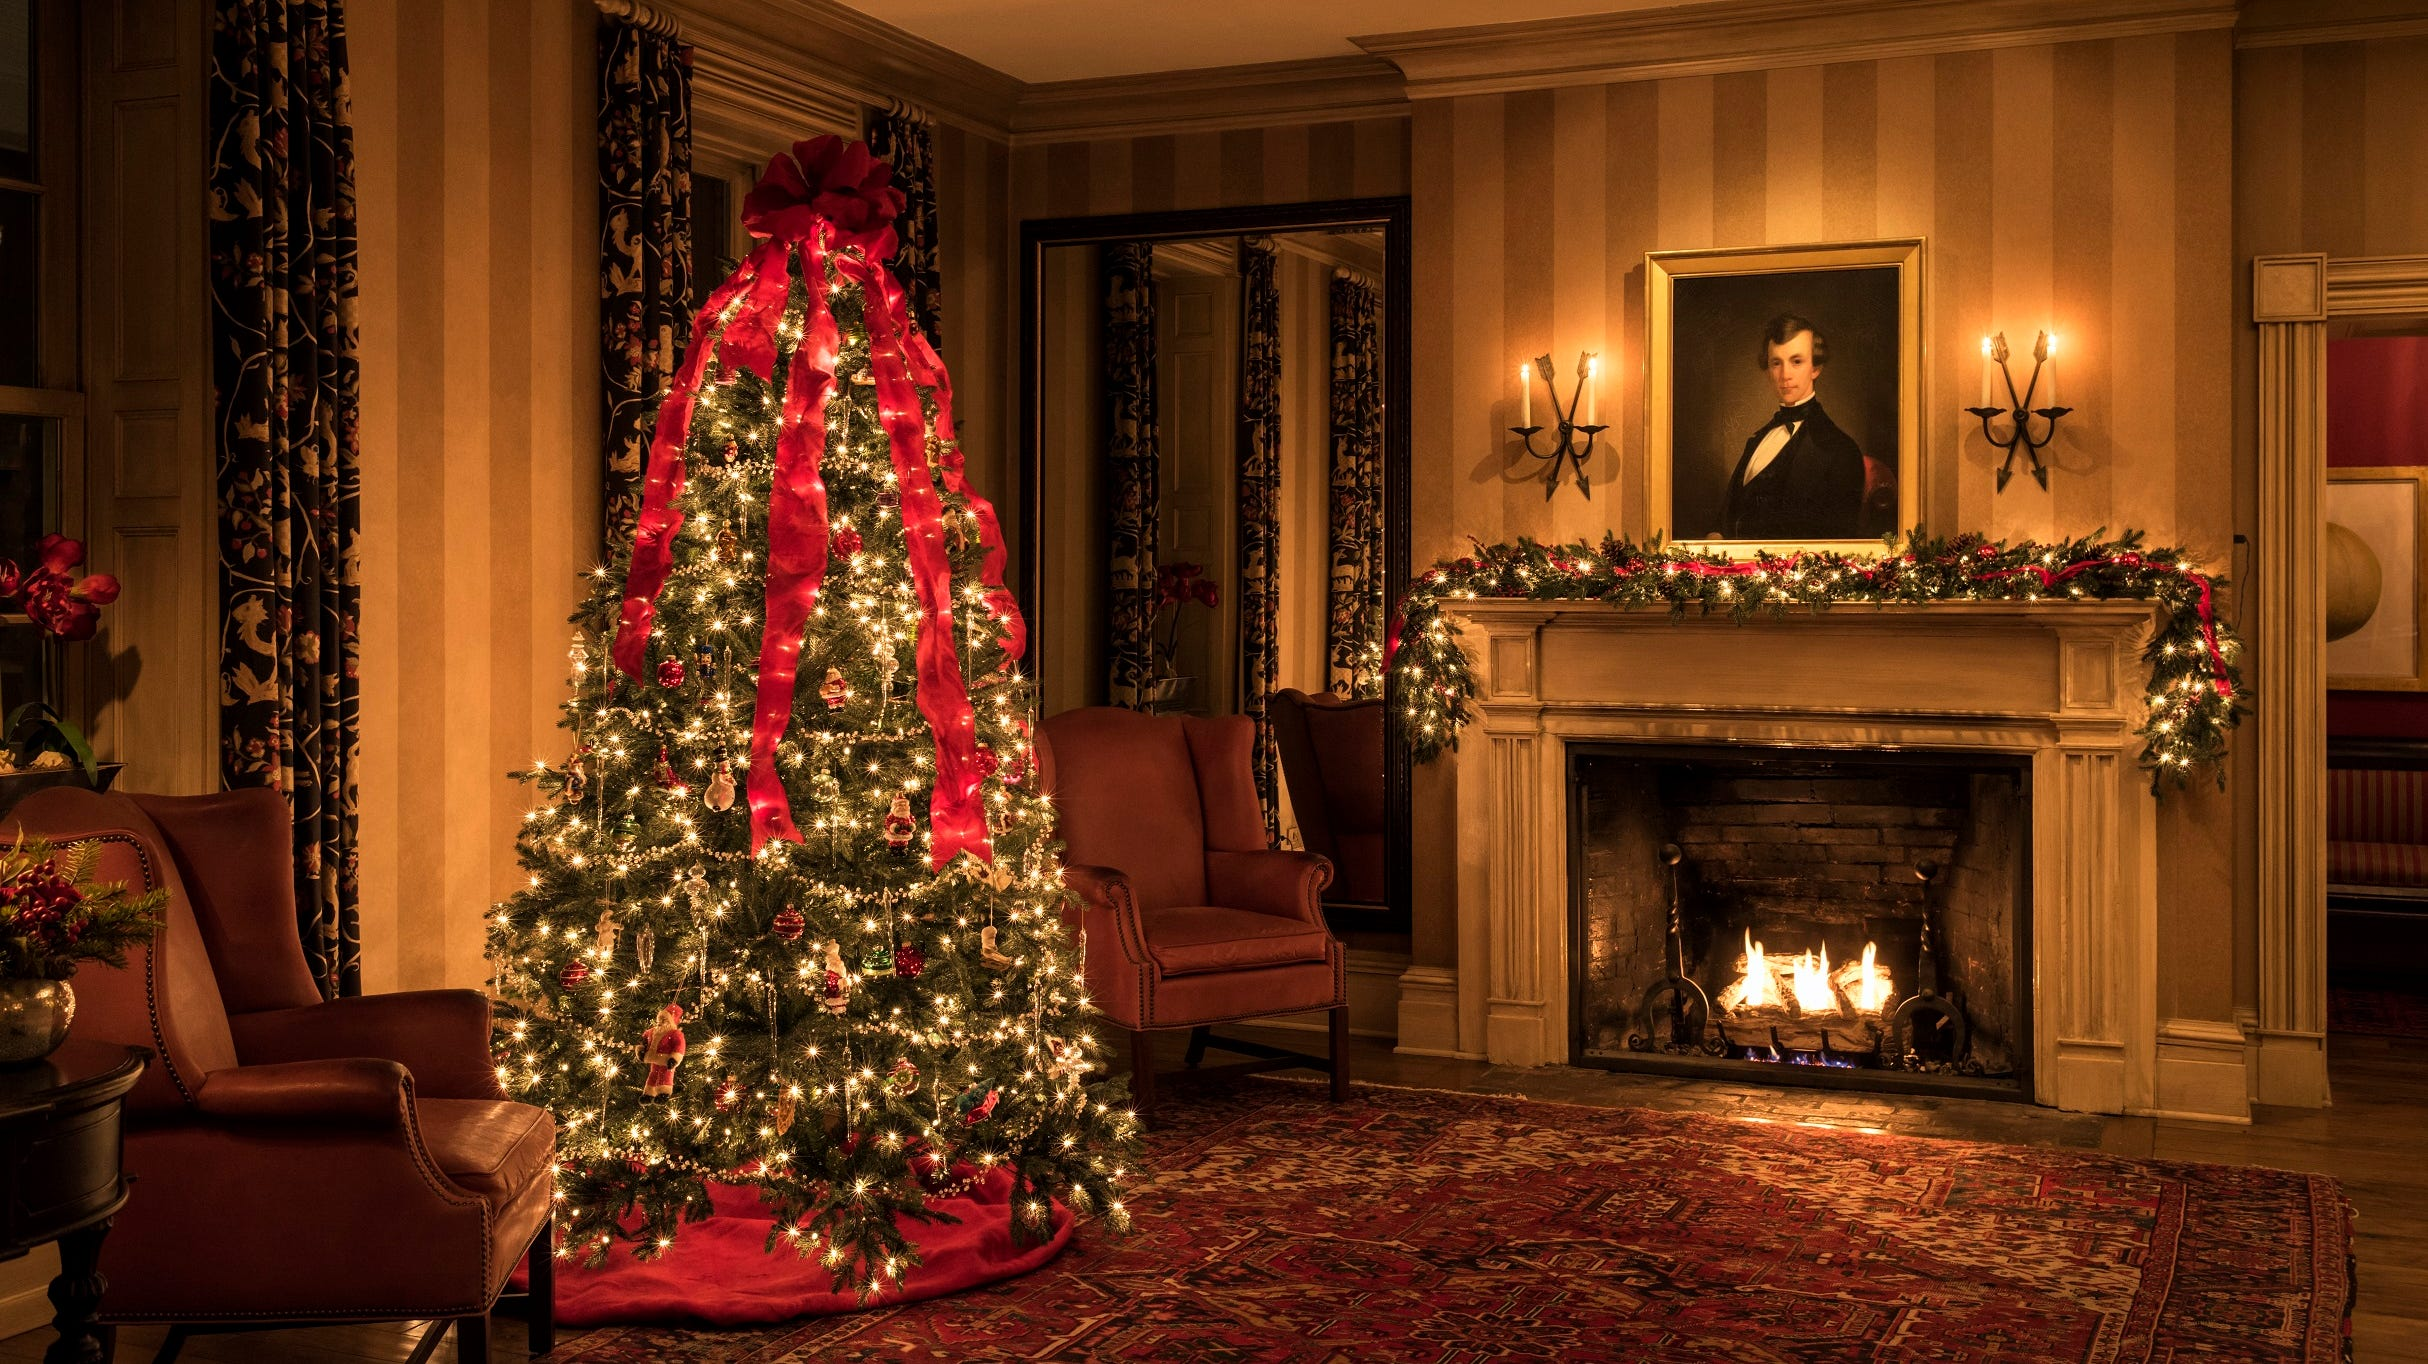 At the Inns of Aurora, a lakeside resort in the Finger Lakes of New York, holiday ornaments adorn the four boutique properties, tailored to enhance each inn's personality.